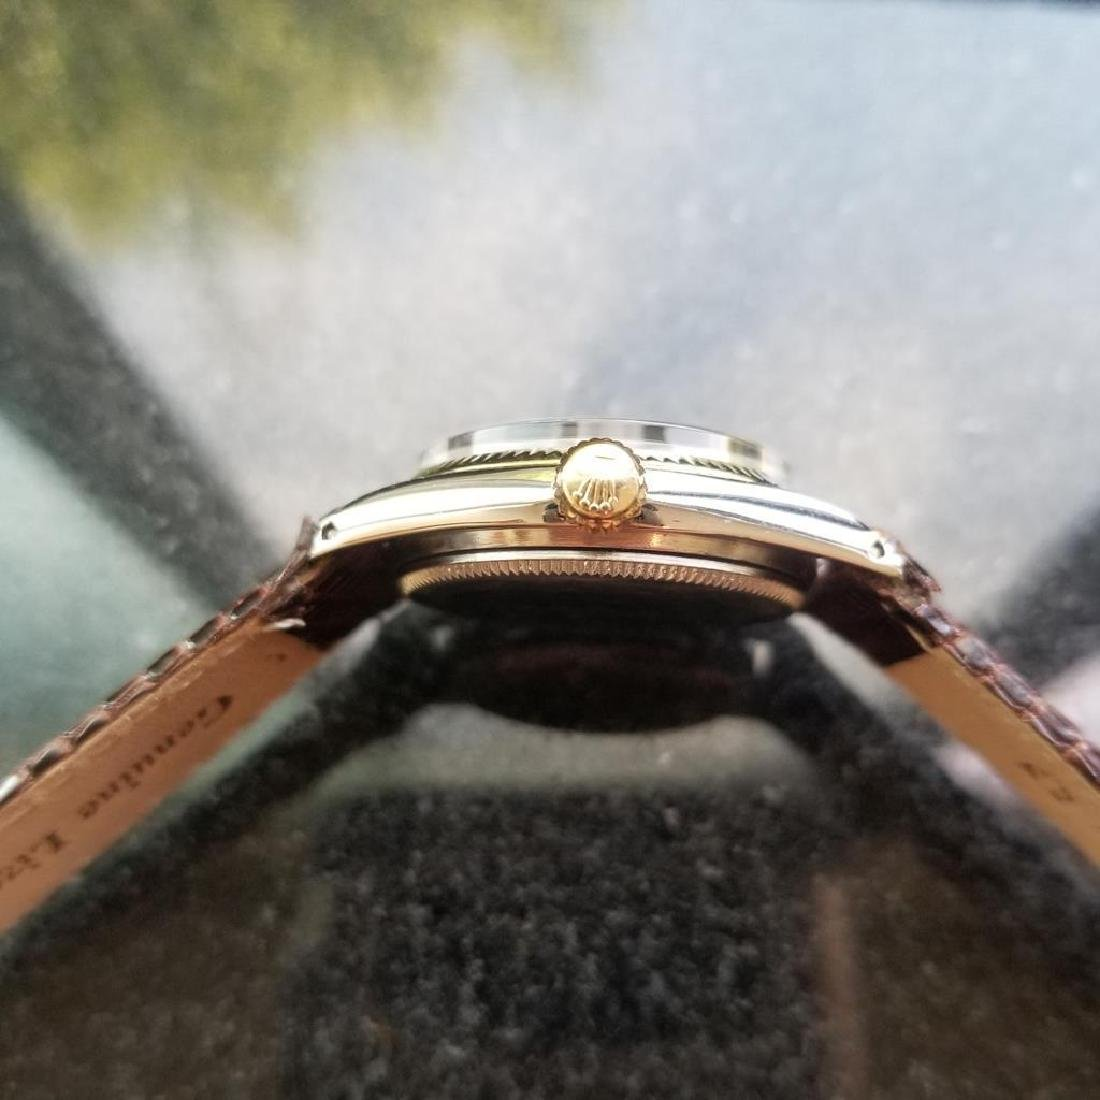 ROLEX Oyster Perpetual ref. 6551 31mm automatic 14k - 6